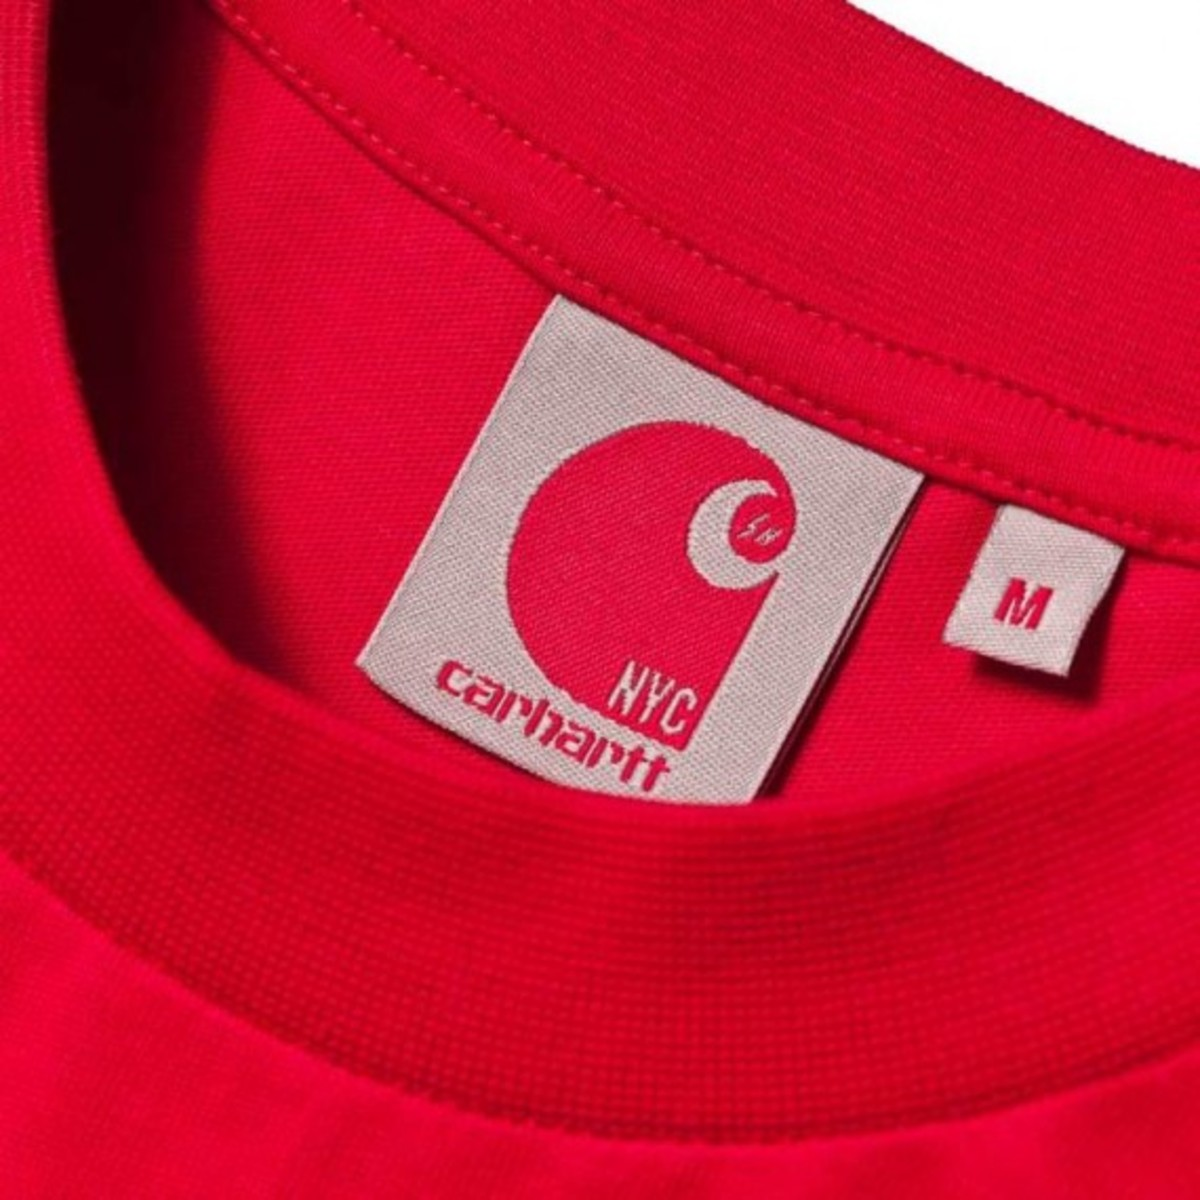 carhartt-wip-fragment-design-nyc-15